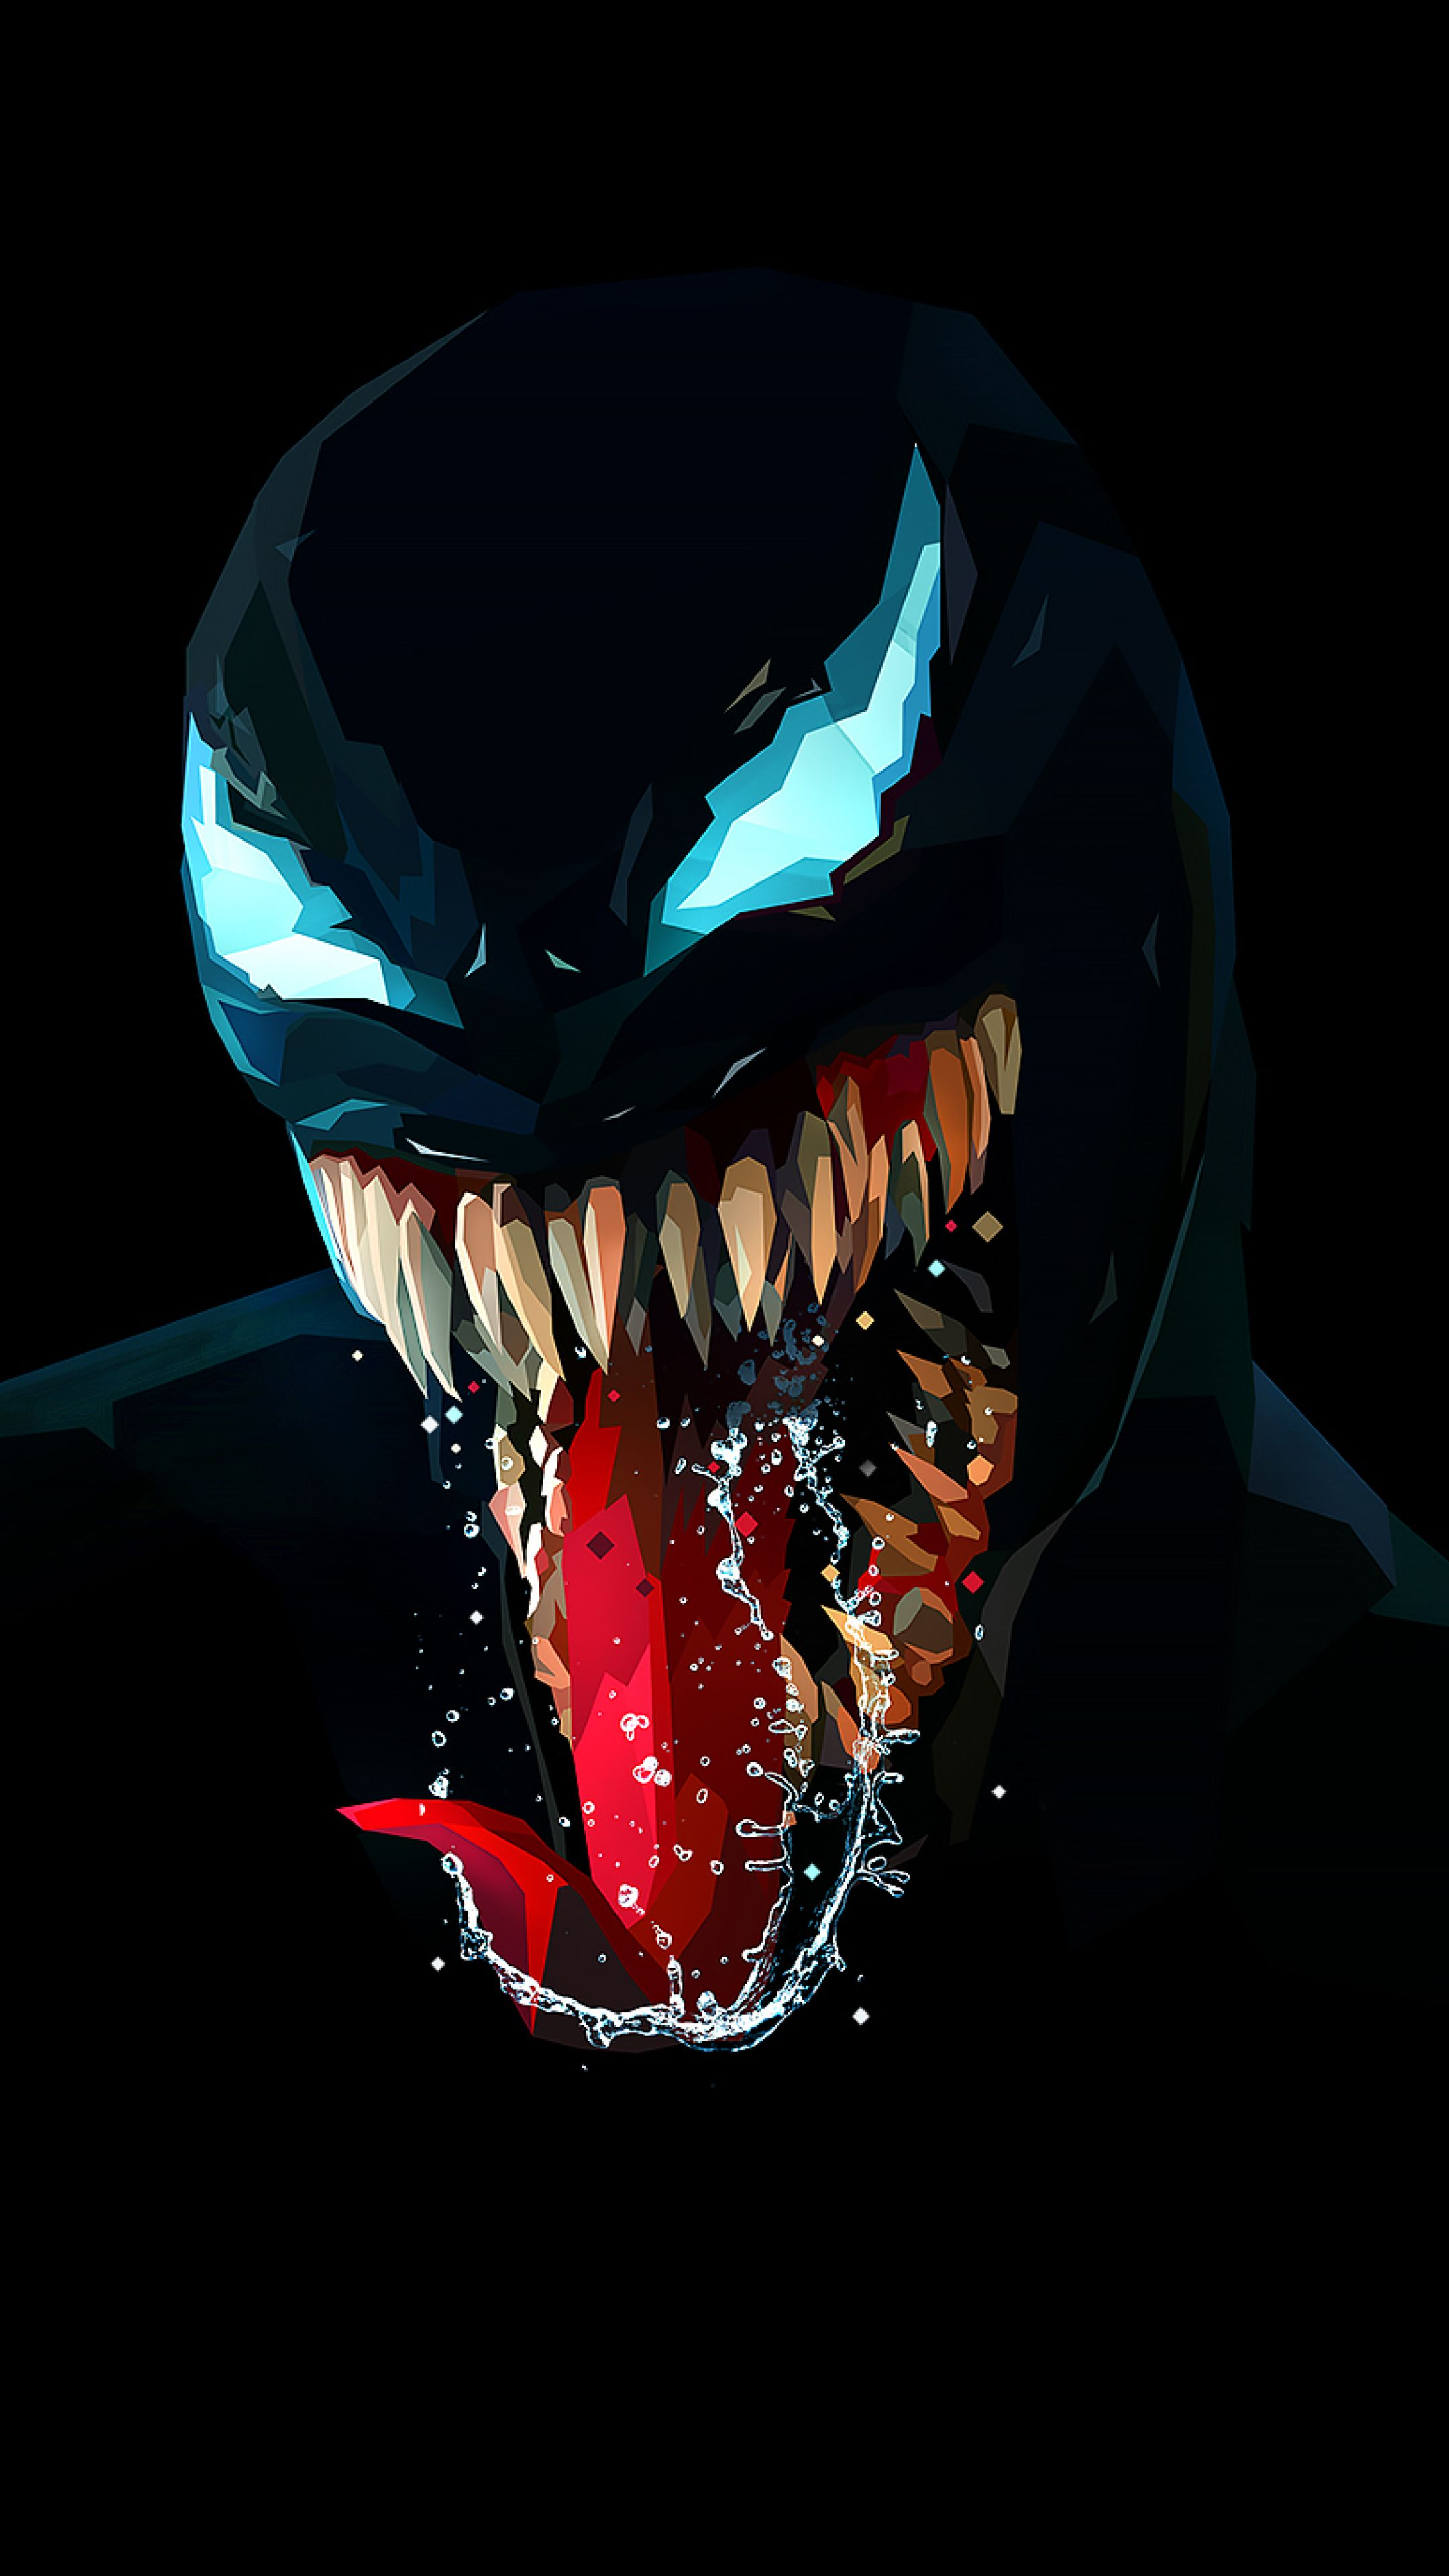 4k Minimalist Wallpapers 282 4k Minimalist Pinterest Venom